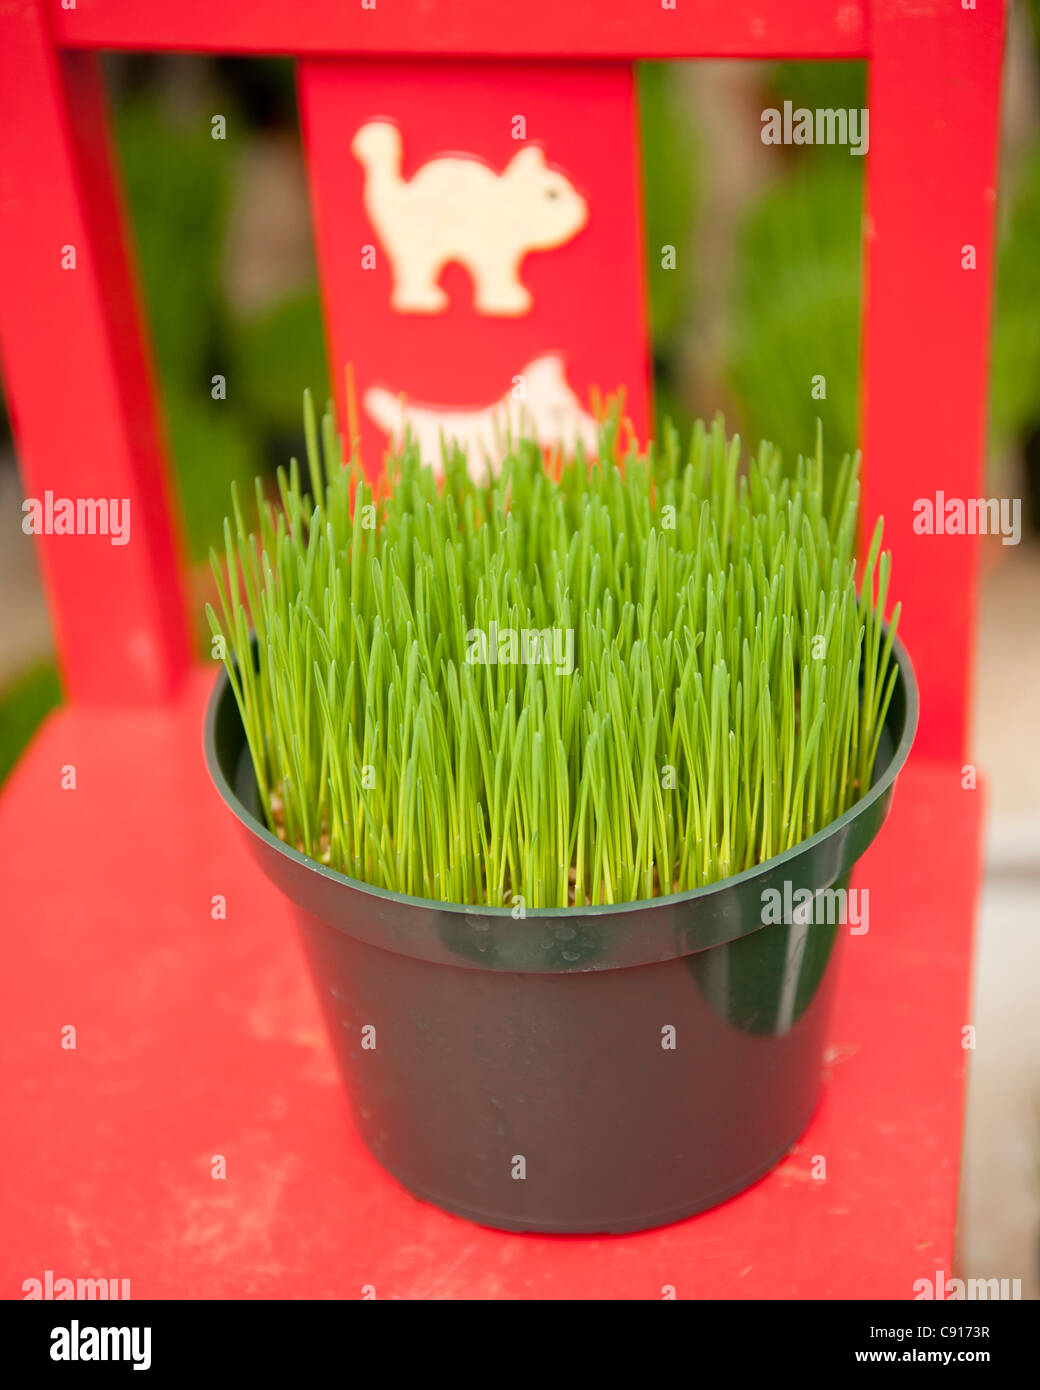 Pet grass is popular in the USA and is grown in pots which small animals like cats and dogs can chew on whenever - Stock Image